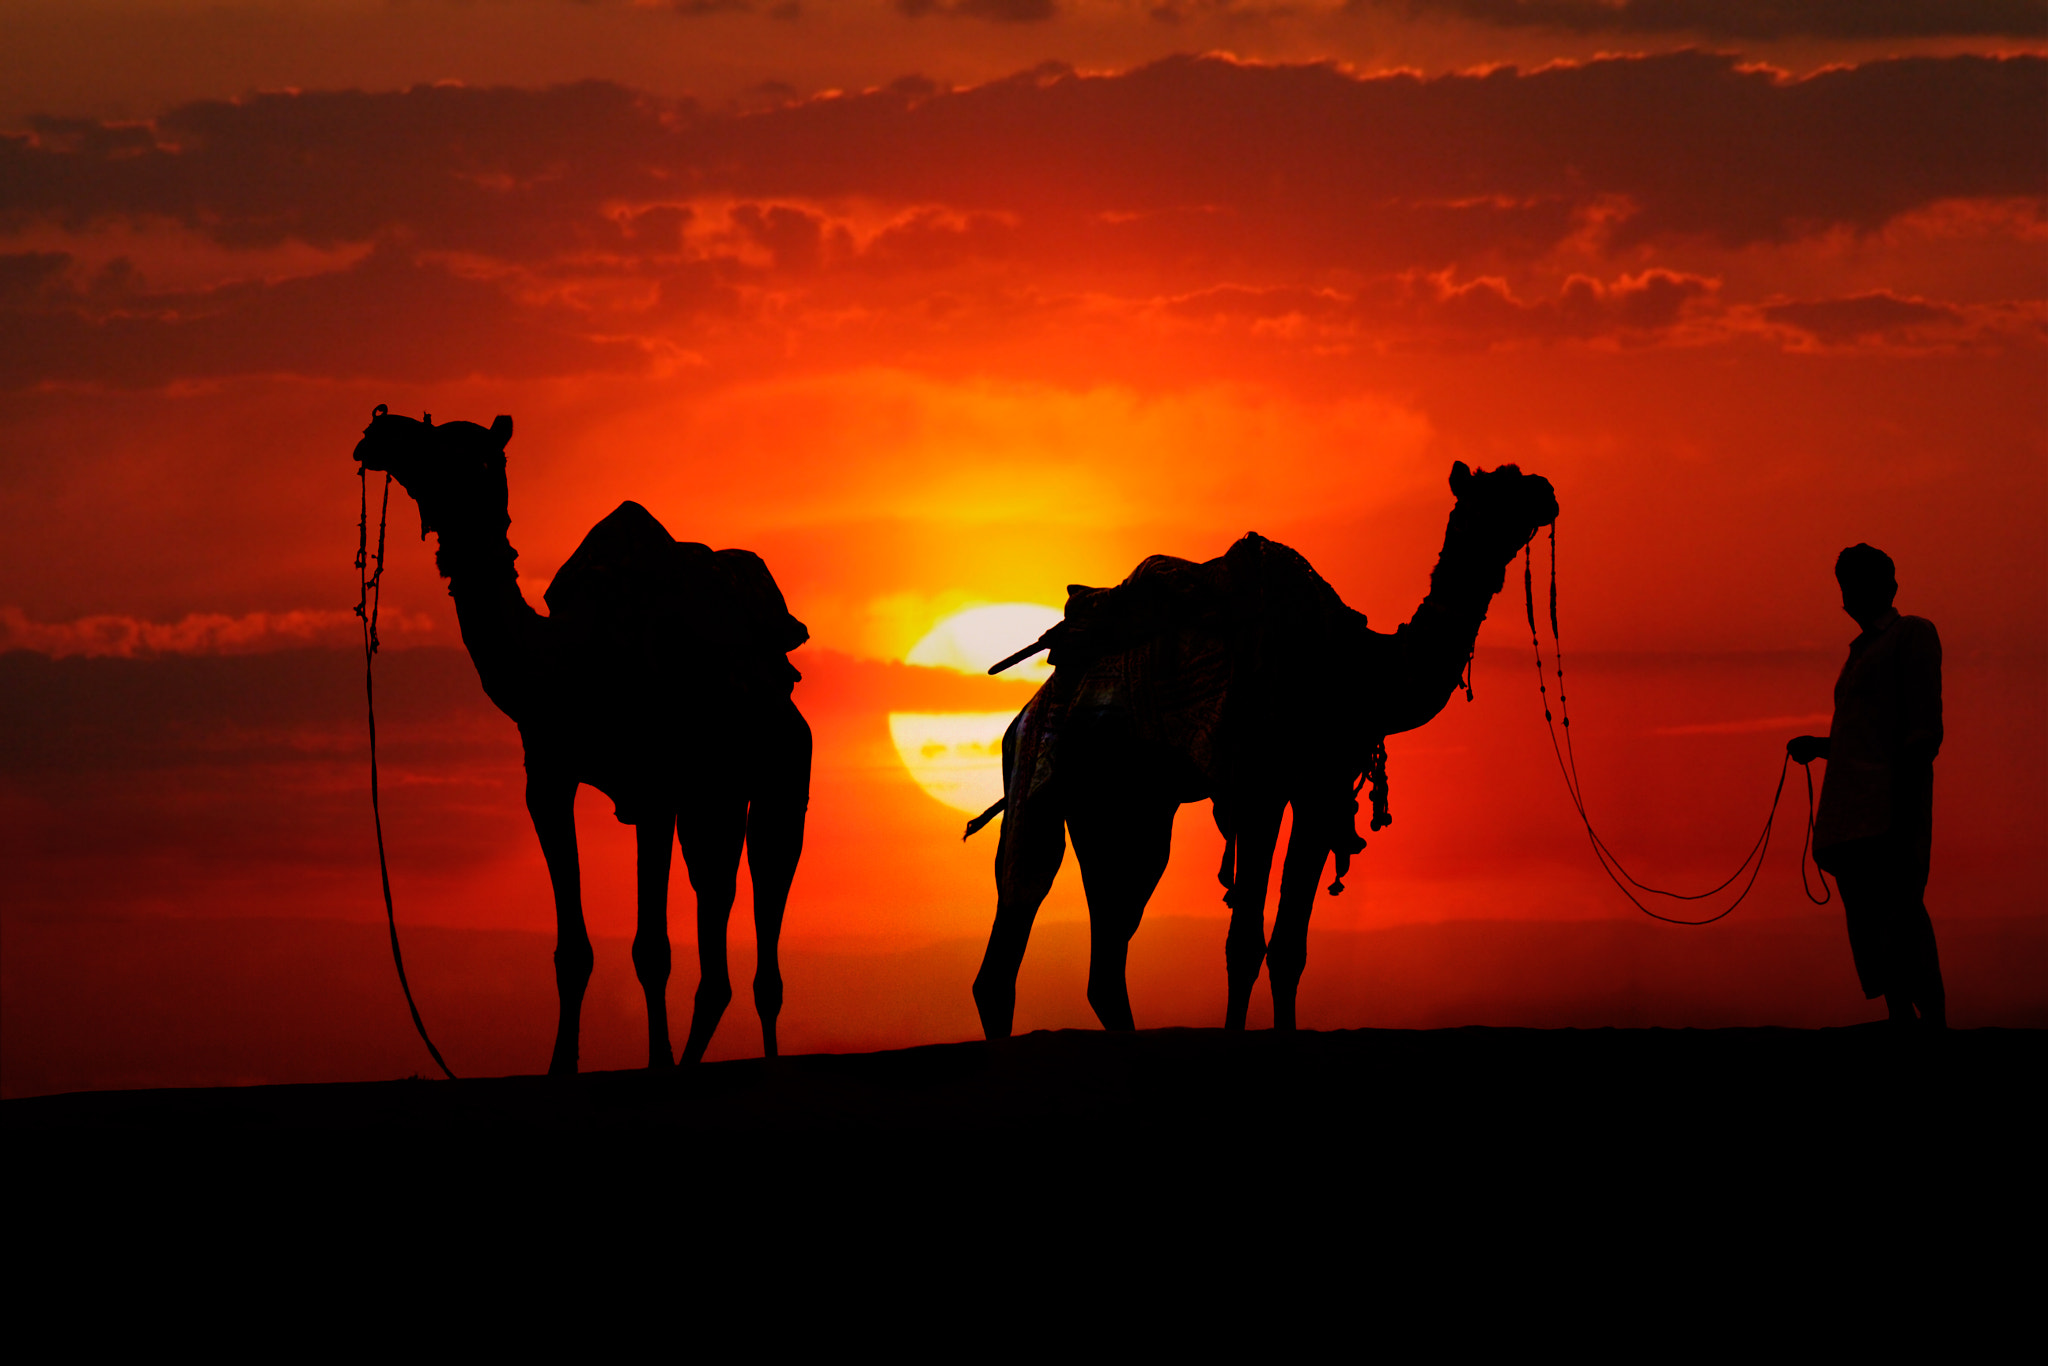 Photograph Silhouette of Camels in the Desert at Sunset by Leander Nardin on 500px